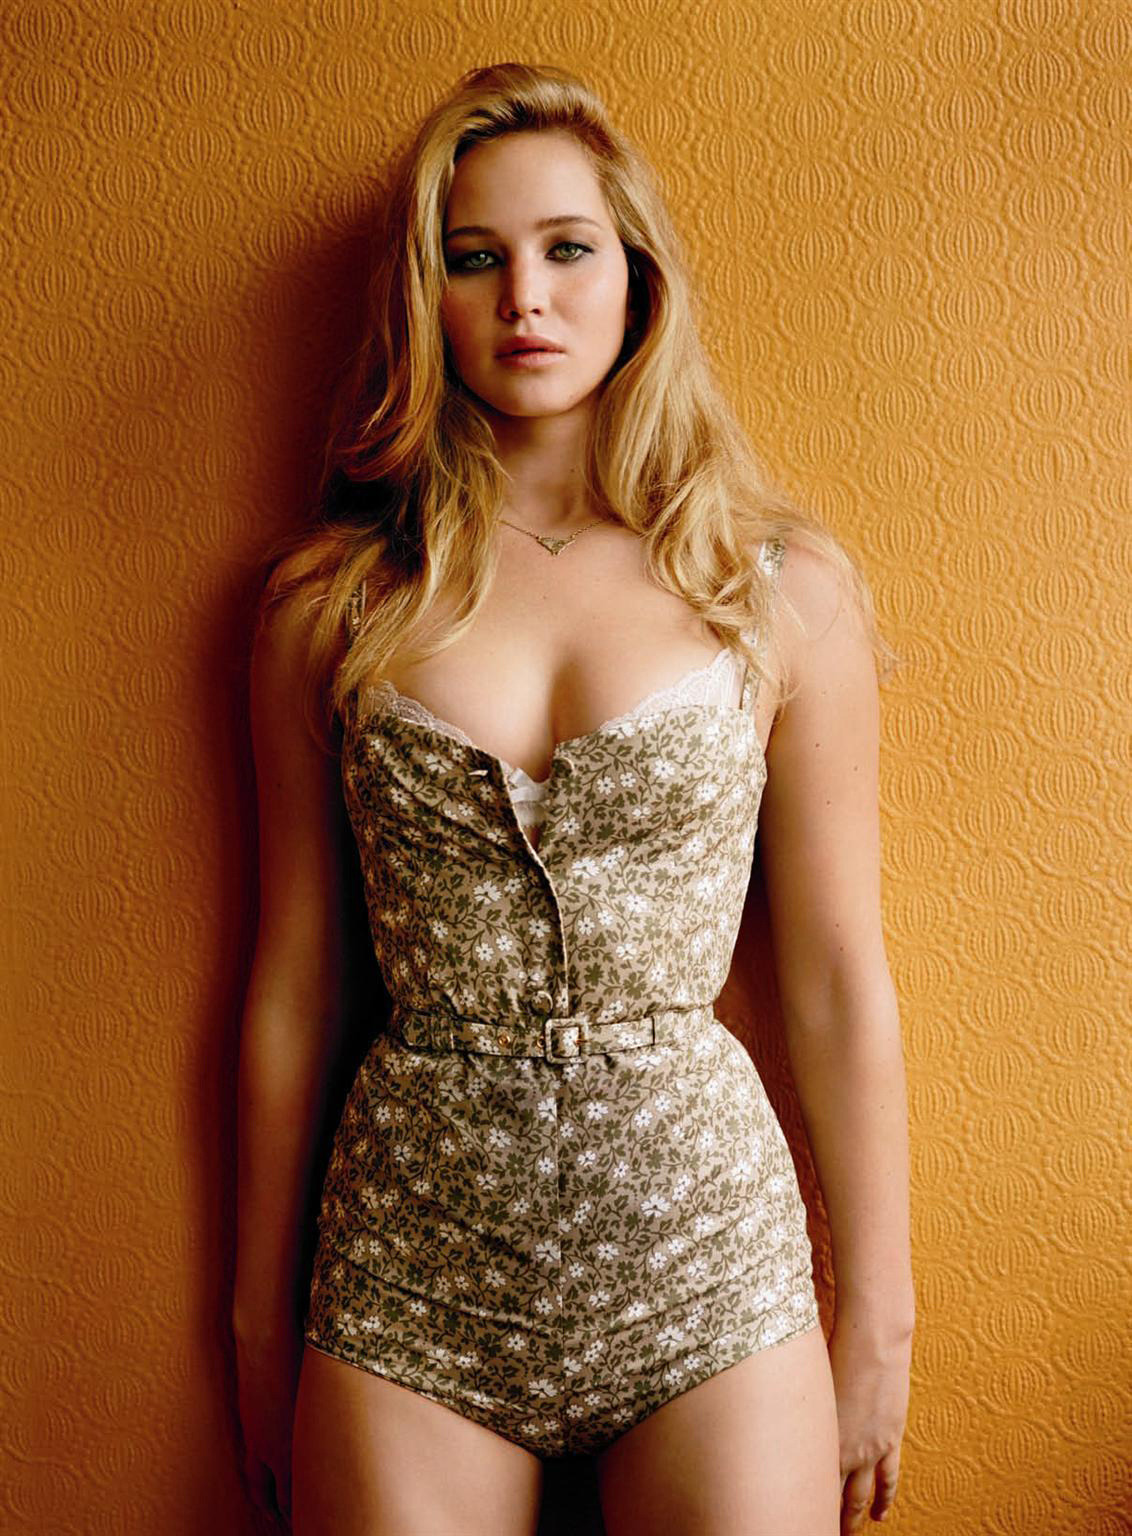 Jennifer Lawrence photographed by Alasdair McLellan for GQ UK, 2011